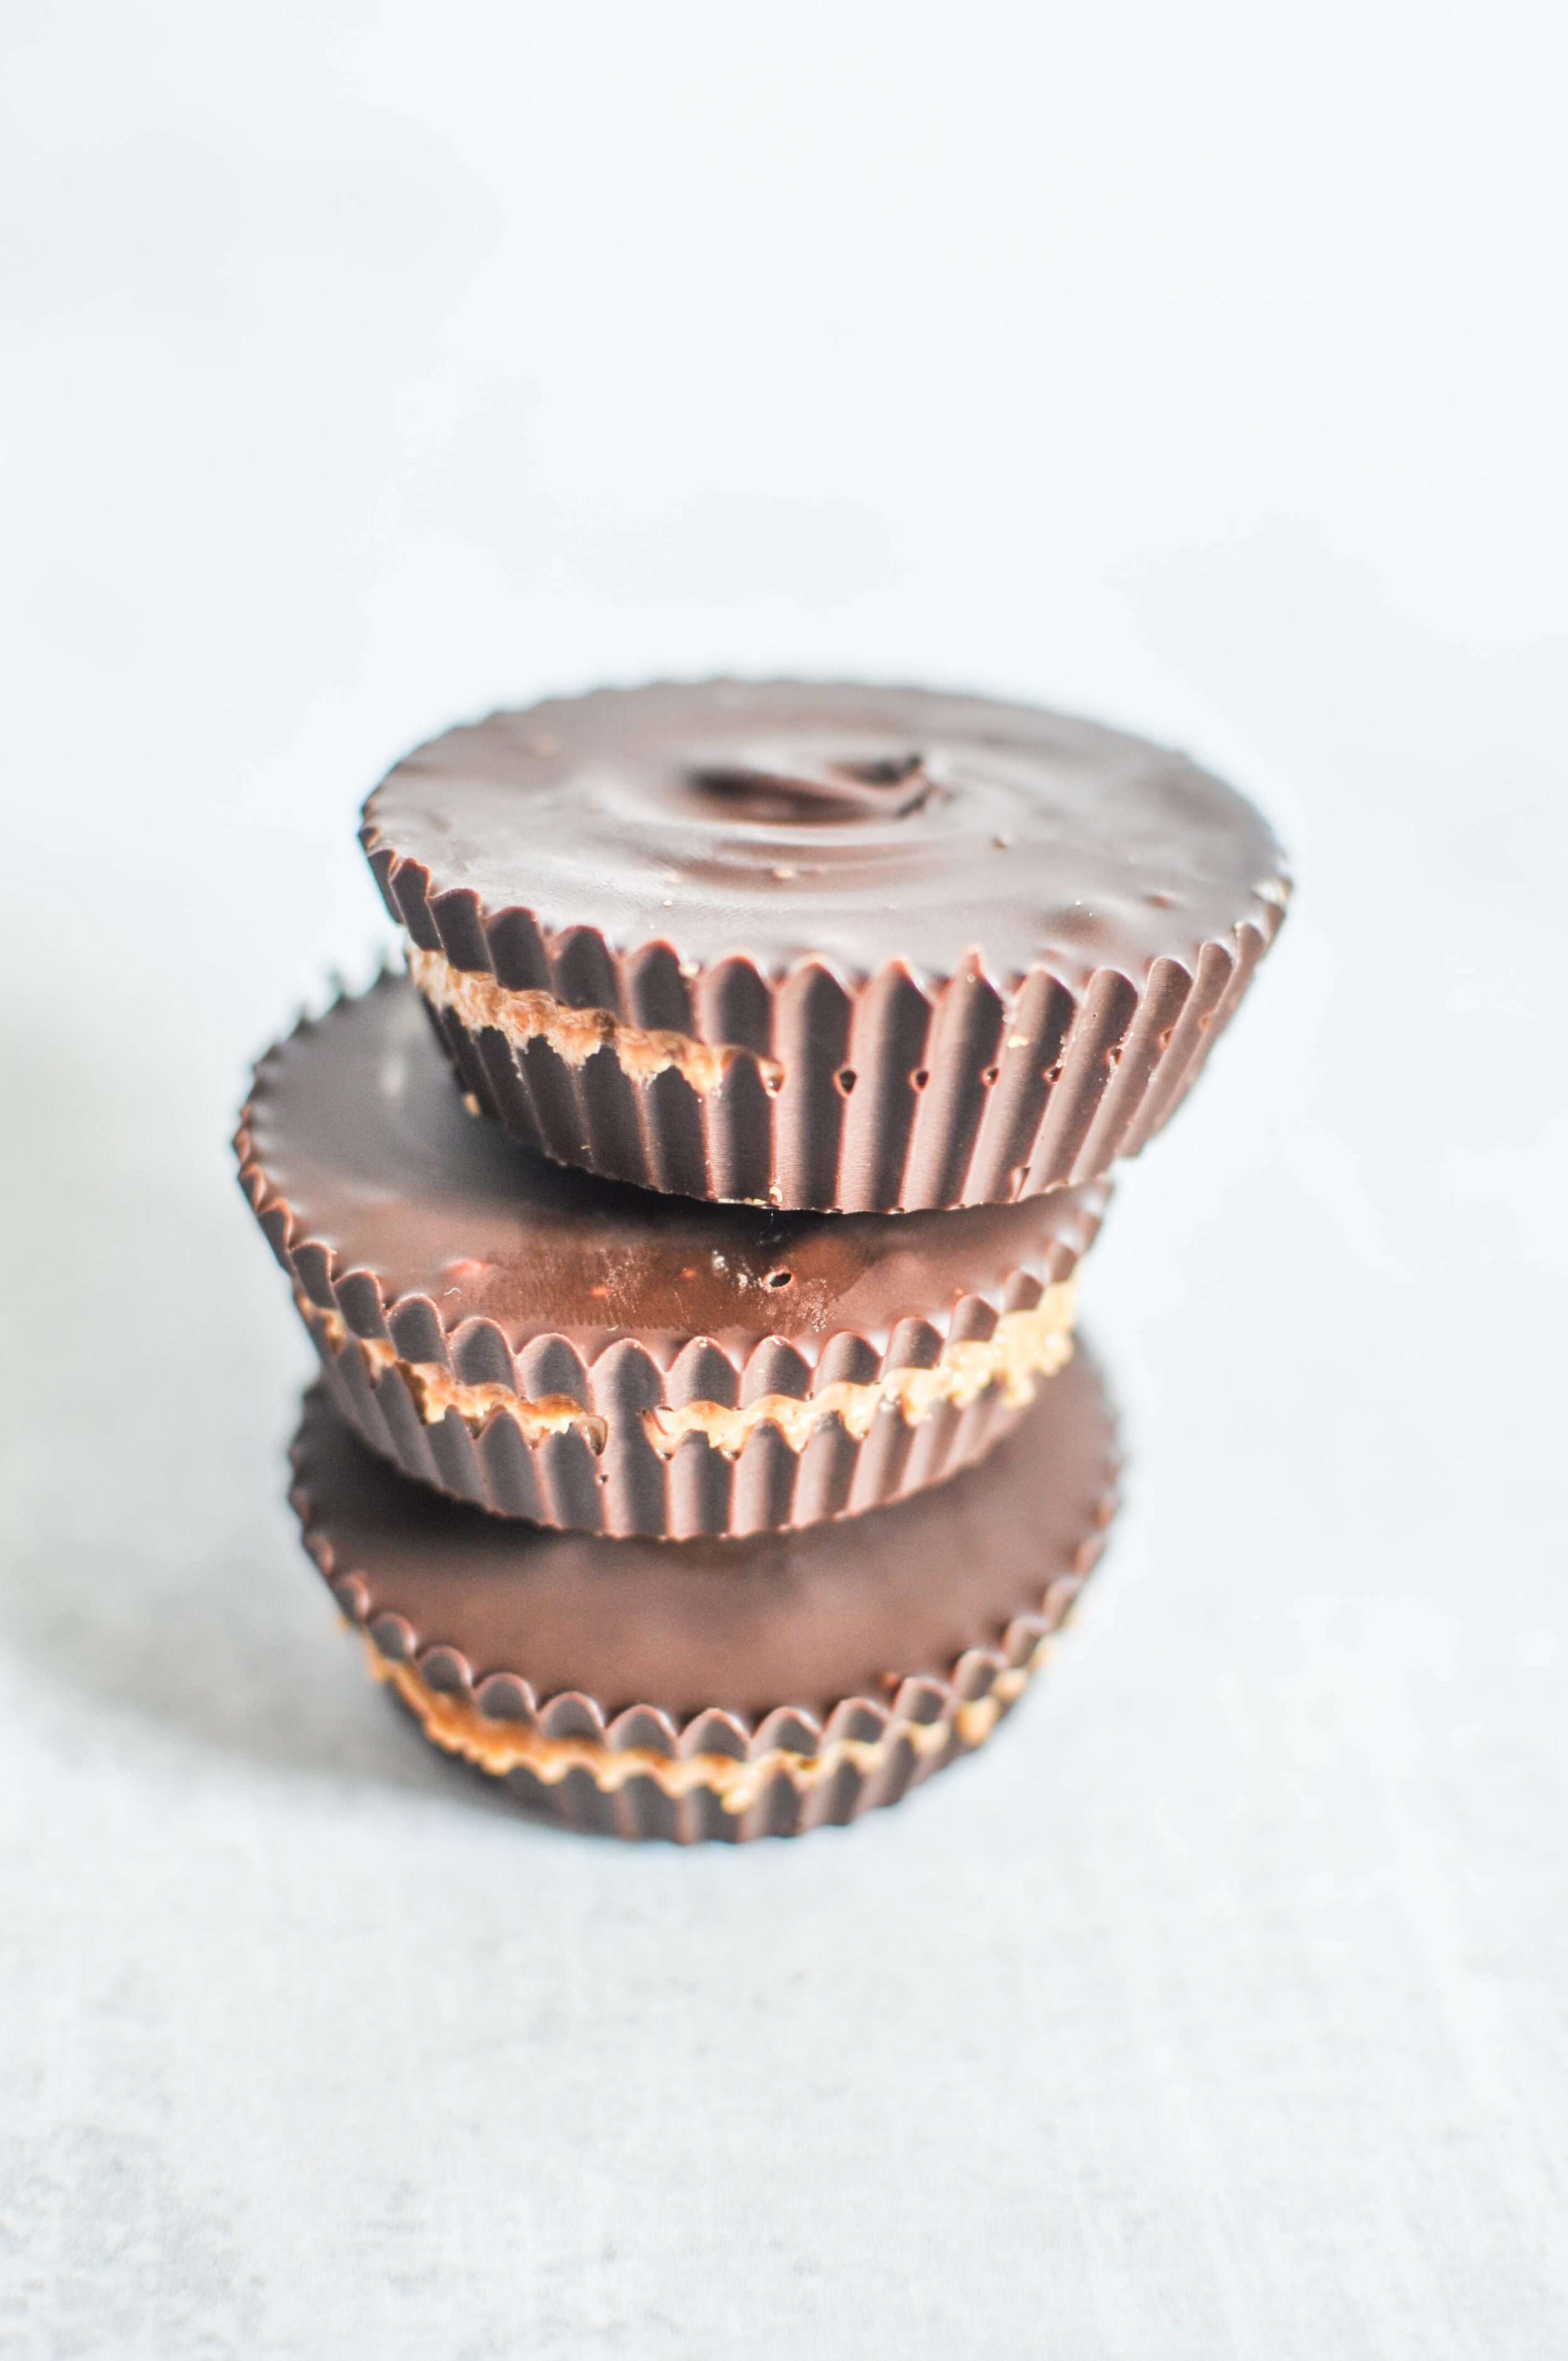 Healthier 2-Ingredient Peanut Butter Cups - You are going to love this easy peanut butter cup recipe! They're ready in less than 15 minutes (I know, how is this even possible?) and they taste great.